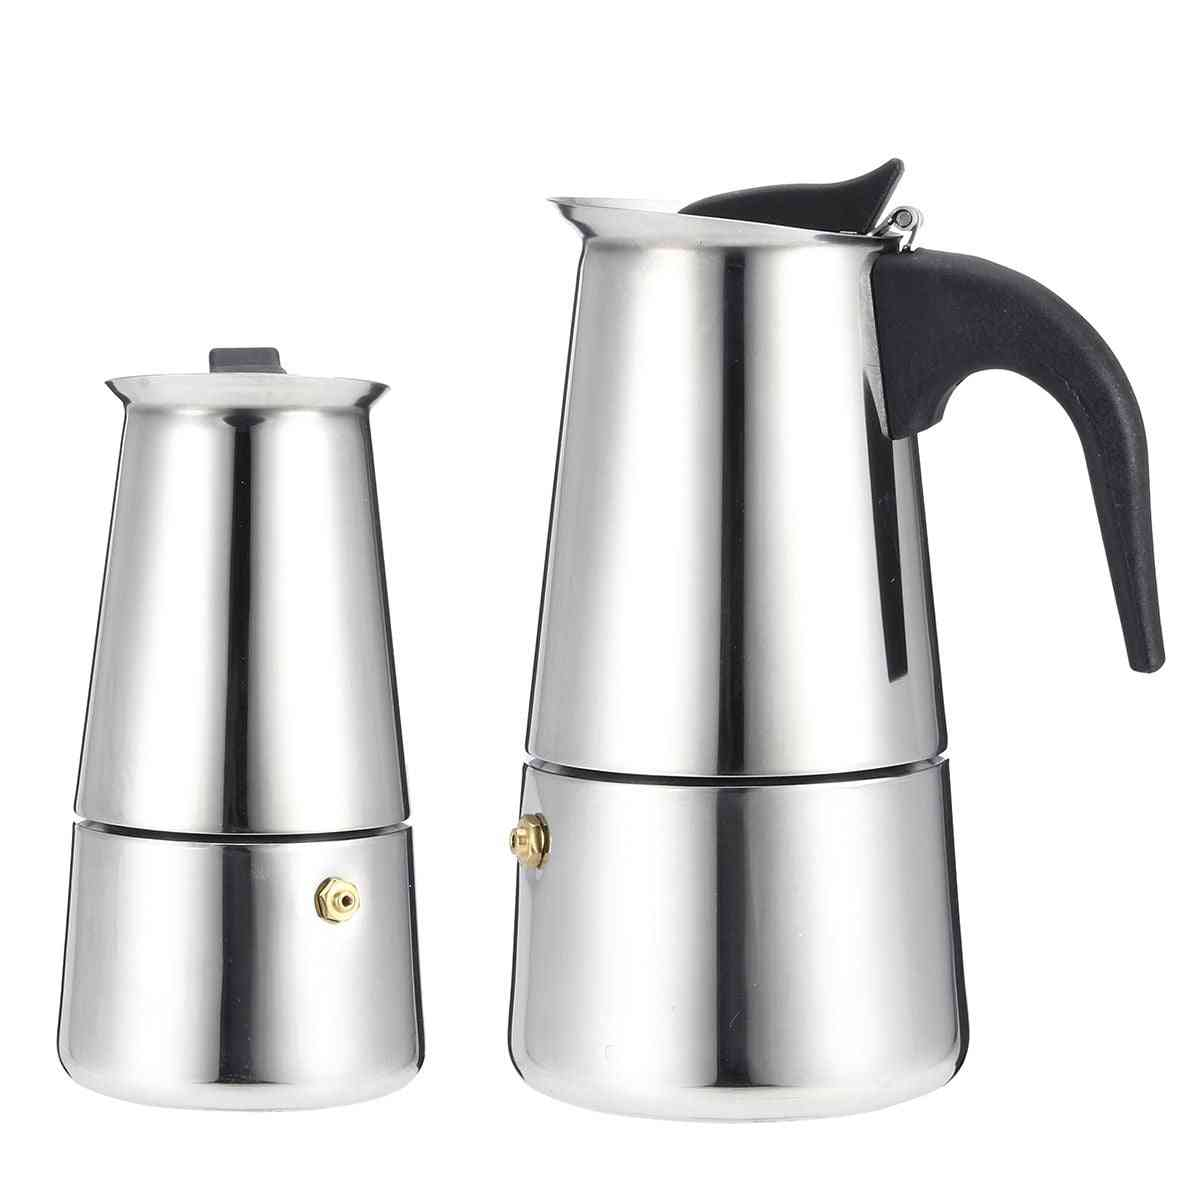 Stainless Steel Espresso Coffee Maker, Moka Pot With Electric Stove, Filter Kettle